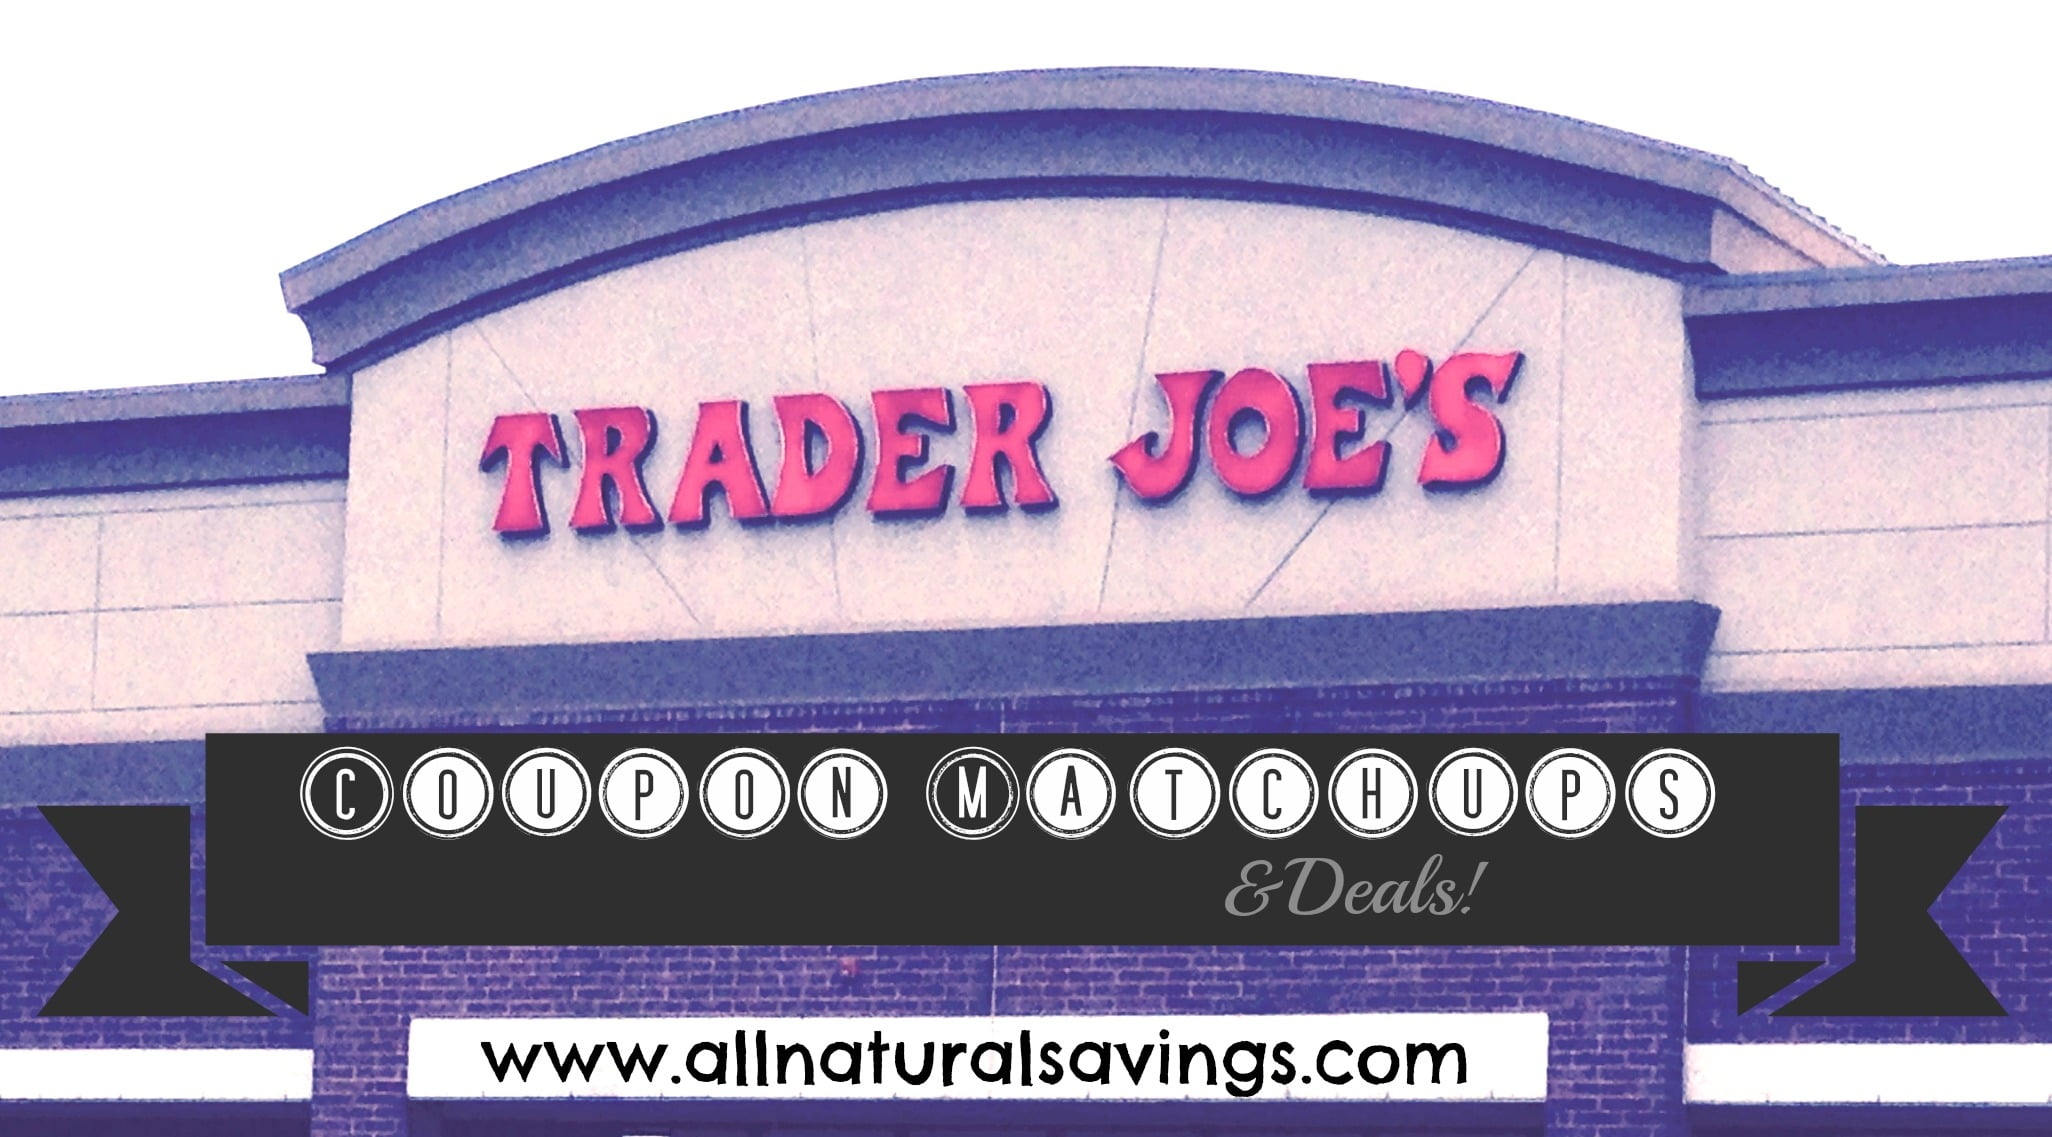 Trader Joes coupons. likes · 2 talking about this. Un-Official Trader Joes coupons fan page for Trader Joes Lovers | Promo Codes & Discounts.